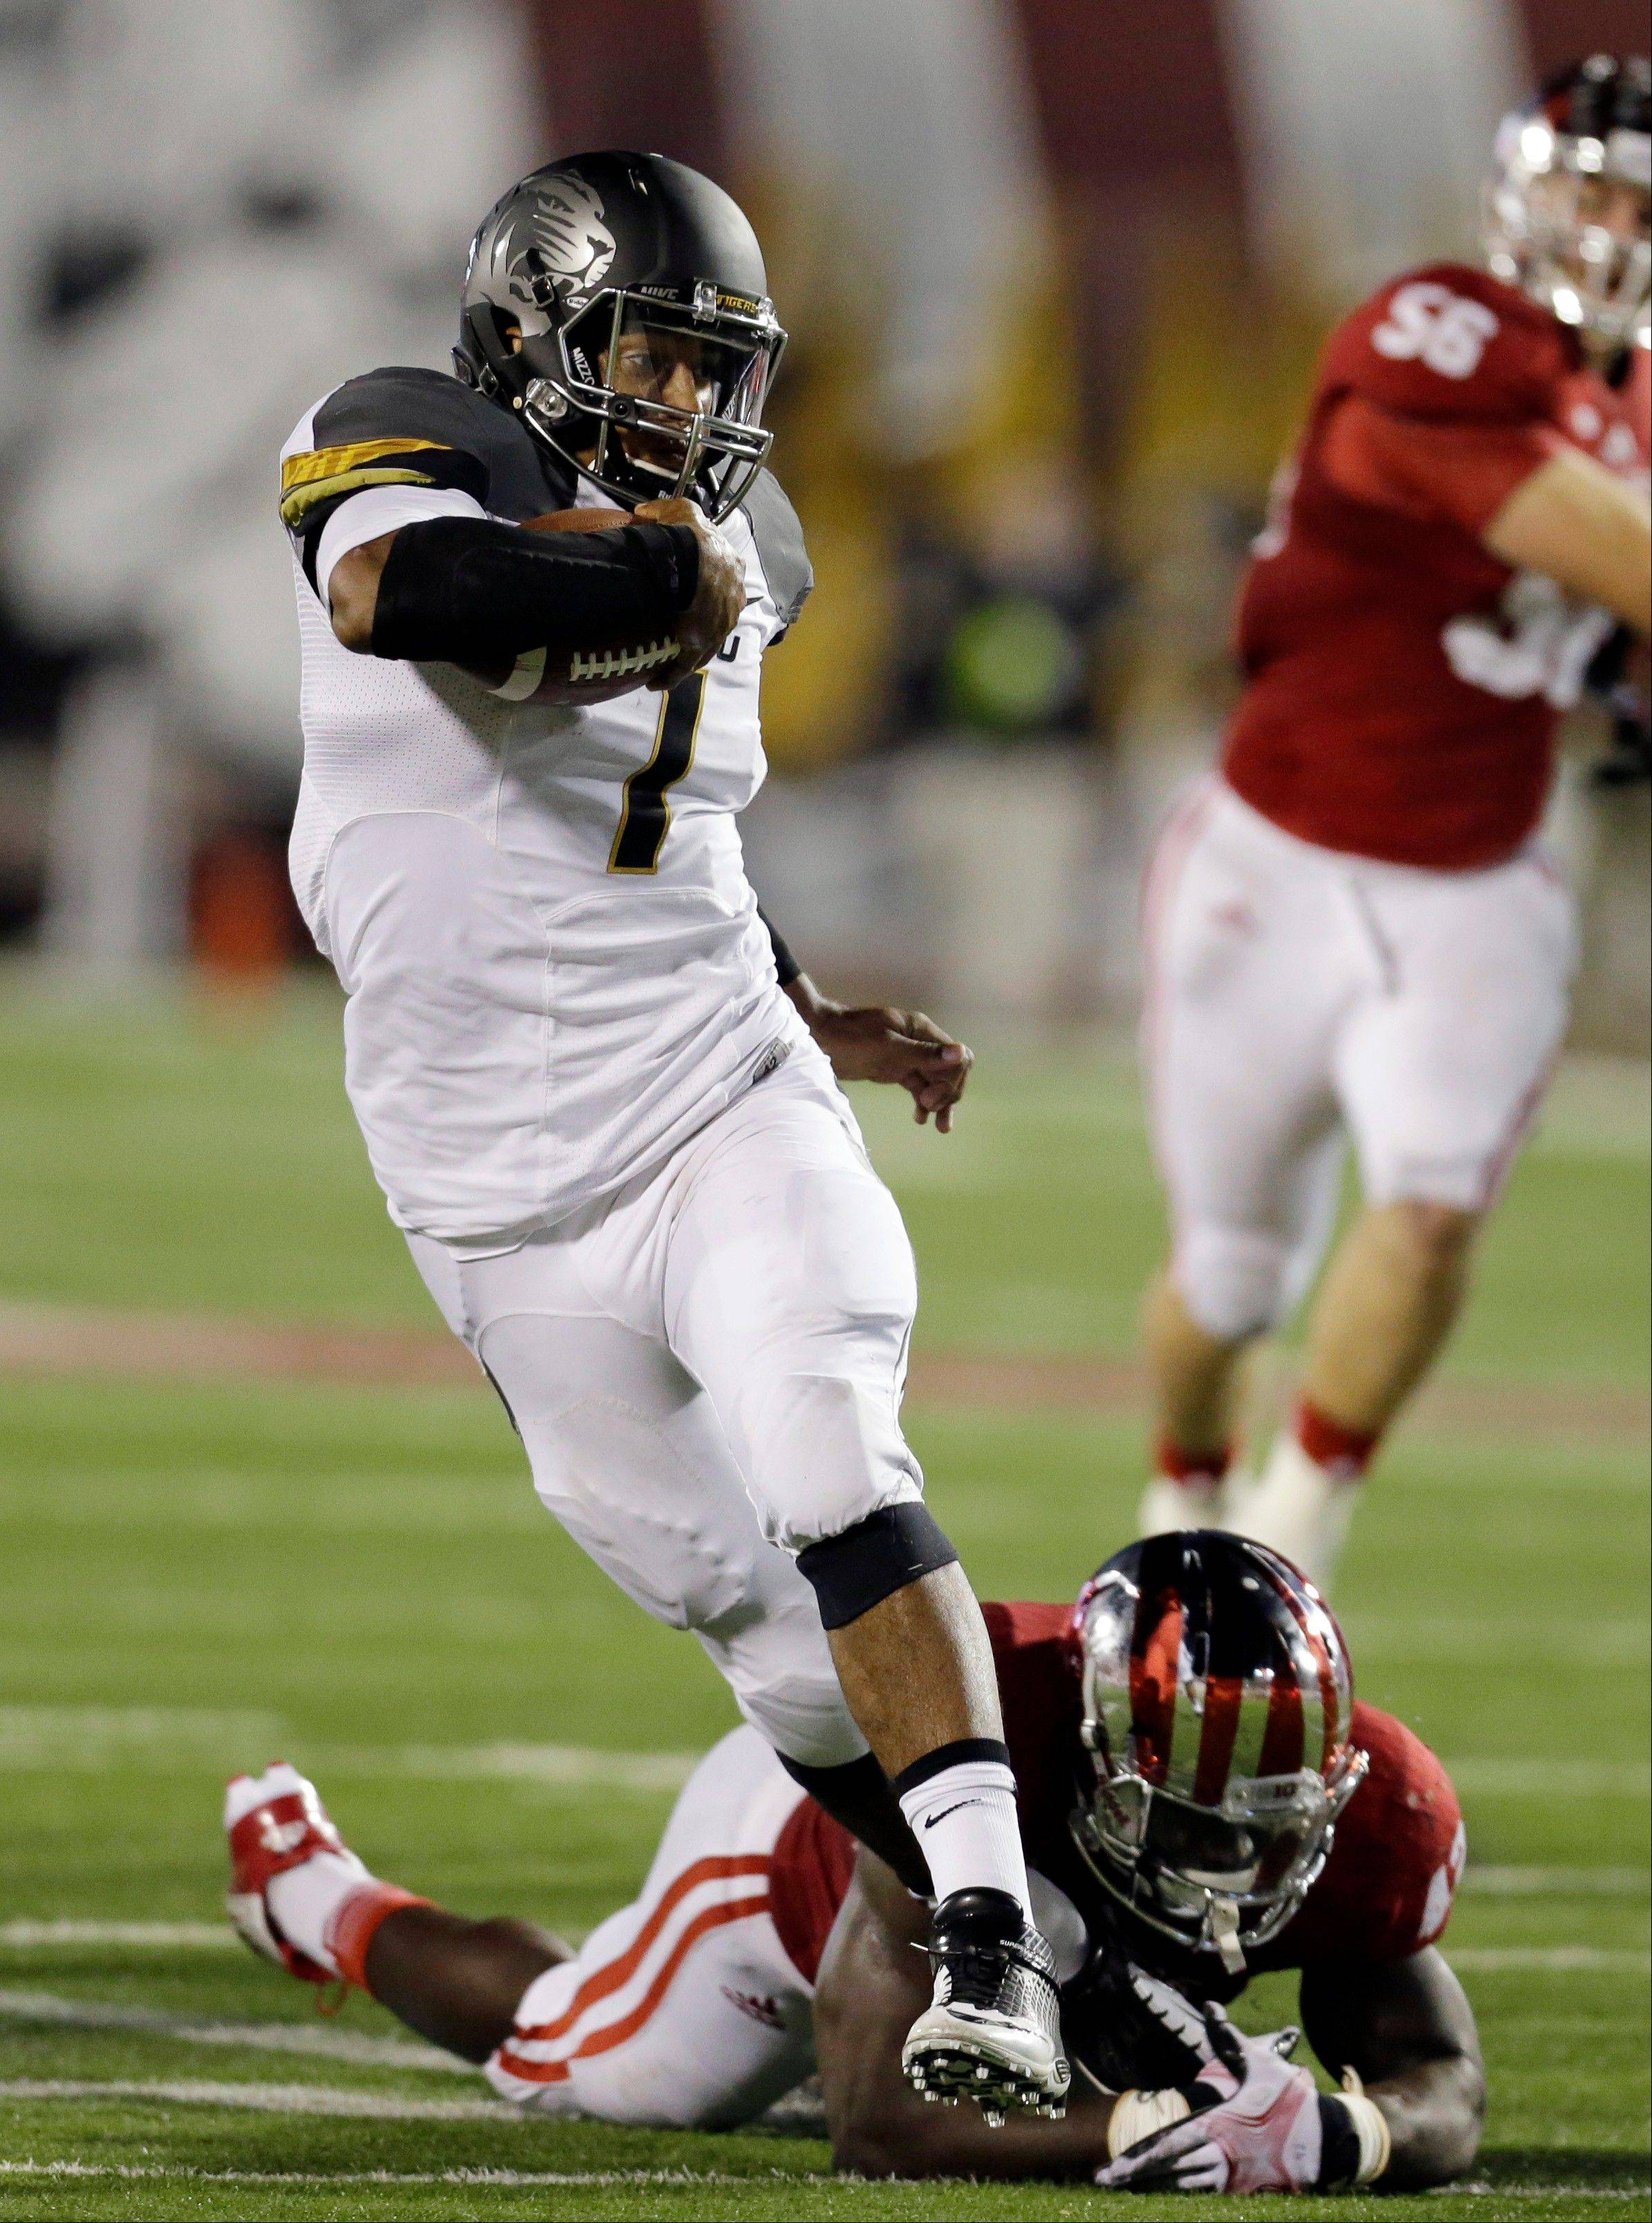 Missouri offense beats up Hoosiers 45-28